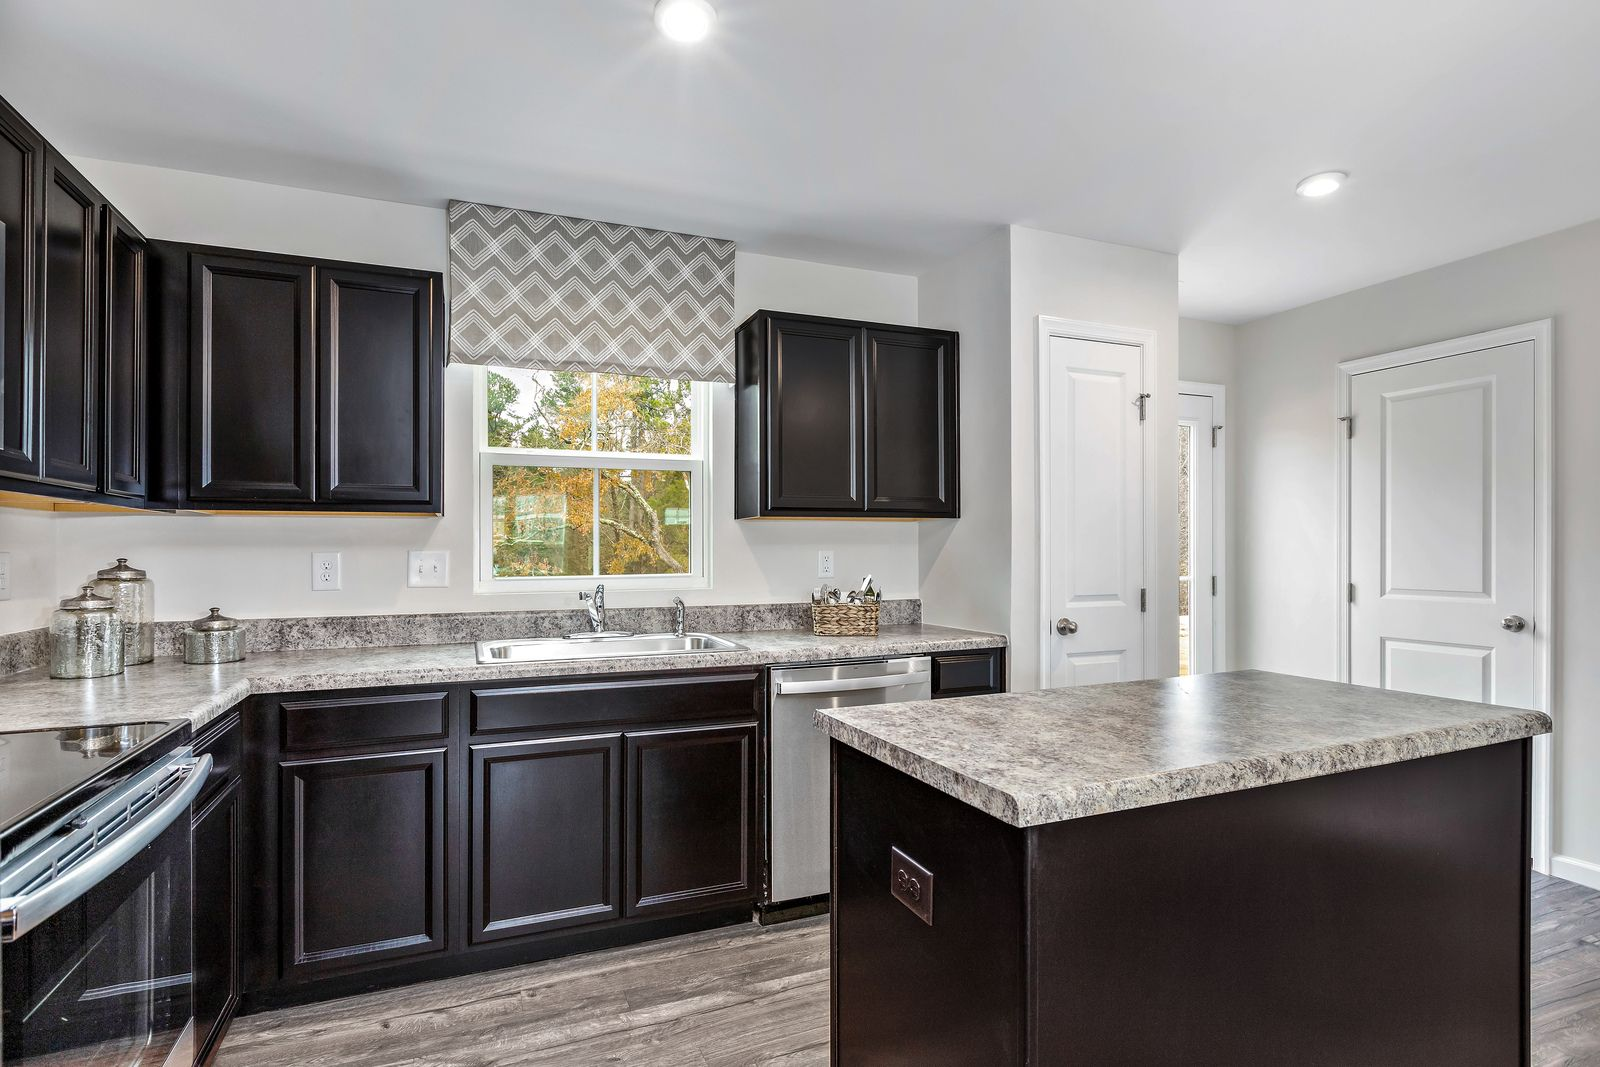 Kitchen featured in the Aspen By Ryan Homes in Charlotte, NC